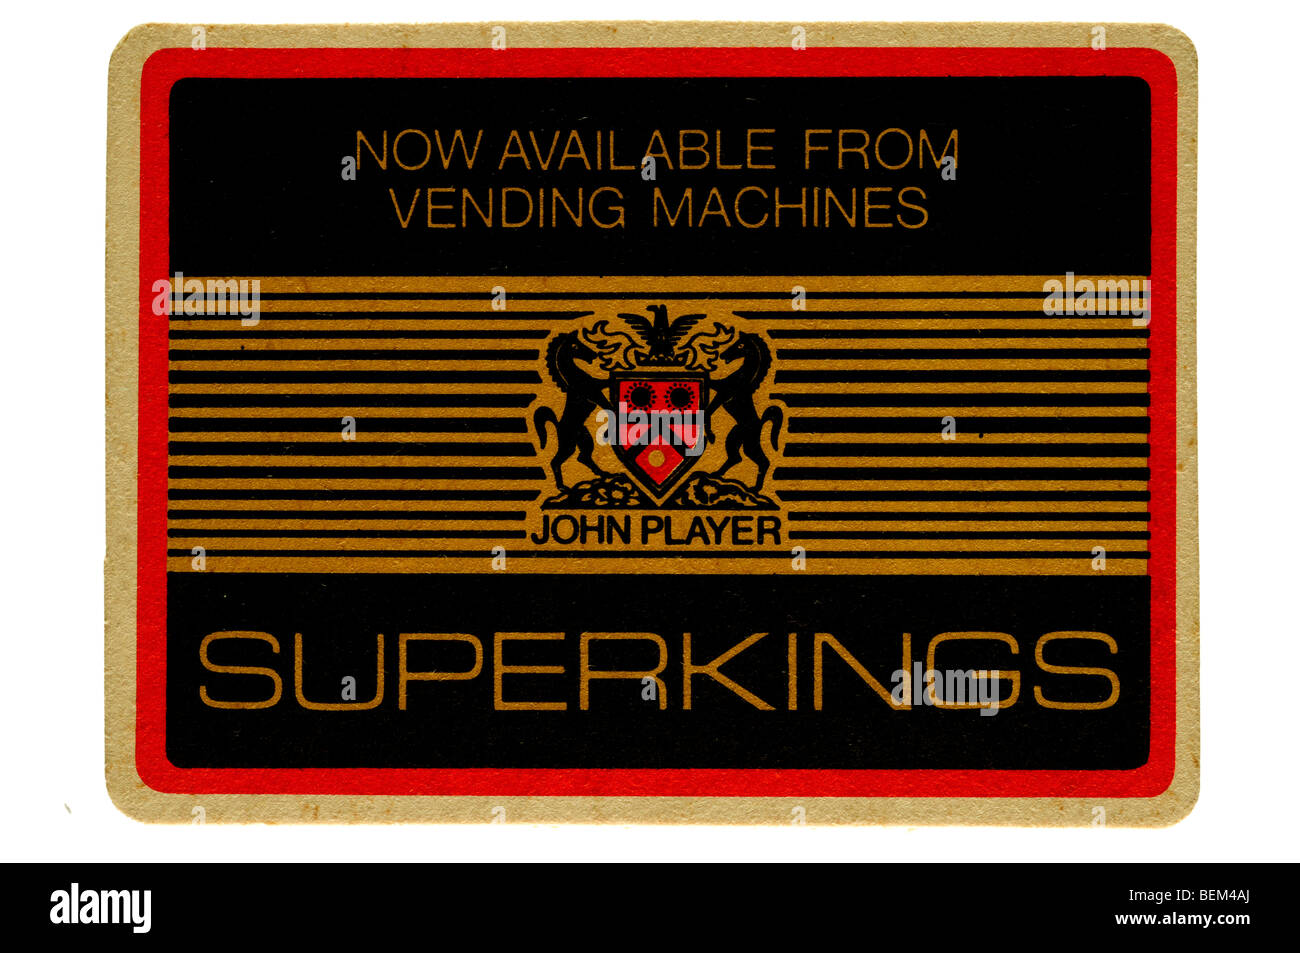 john player superkings now available from vending machines - Stock Image